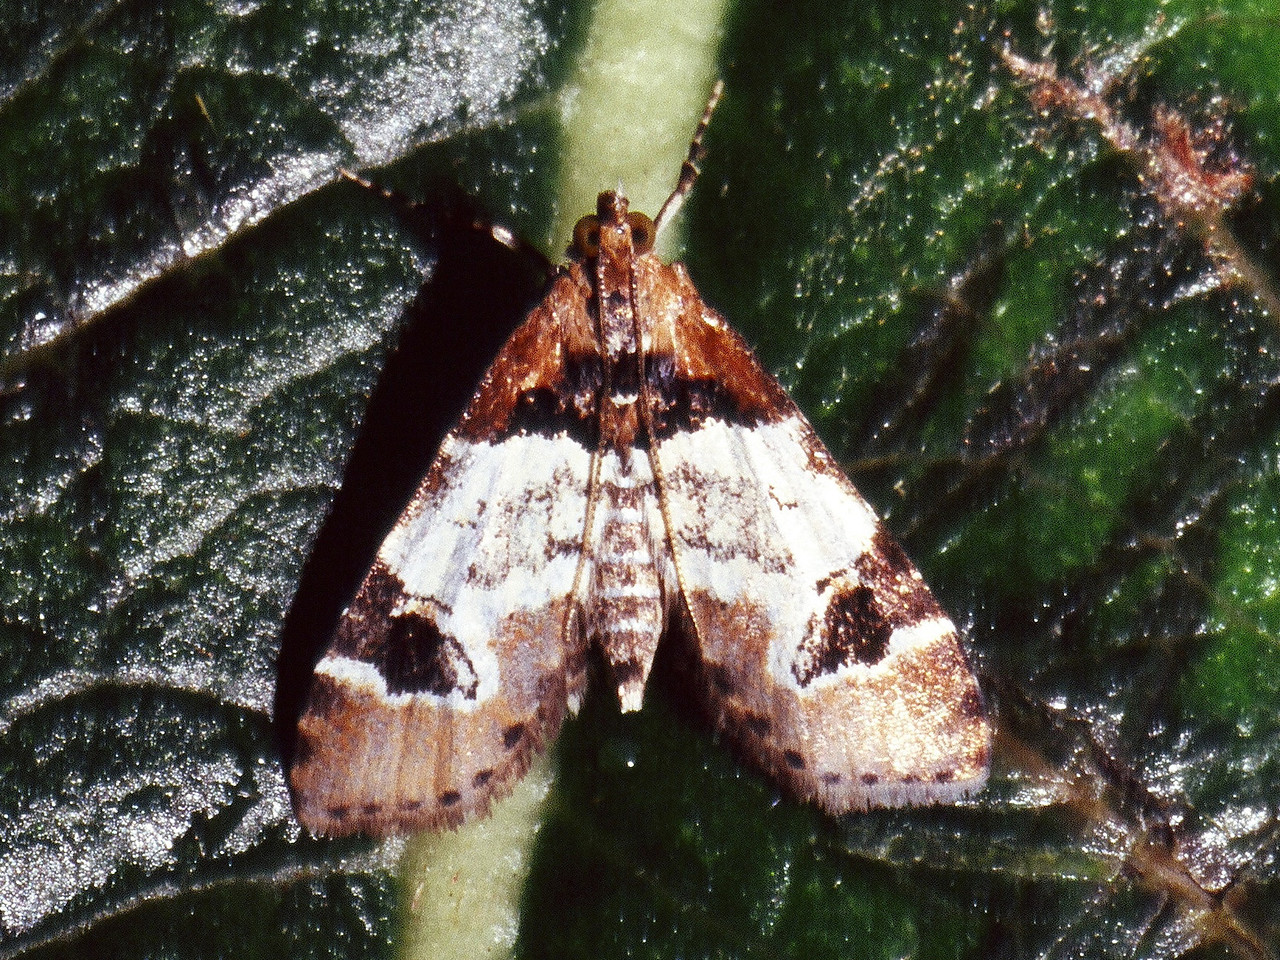 Udea sp. (Crambidae) on Stenogyne kameamehae, West Maui